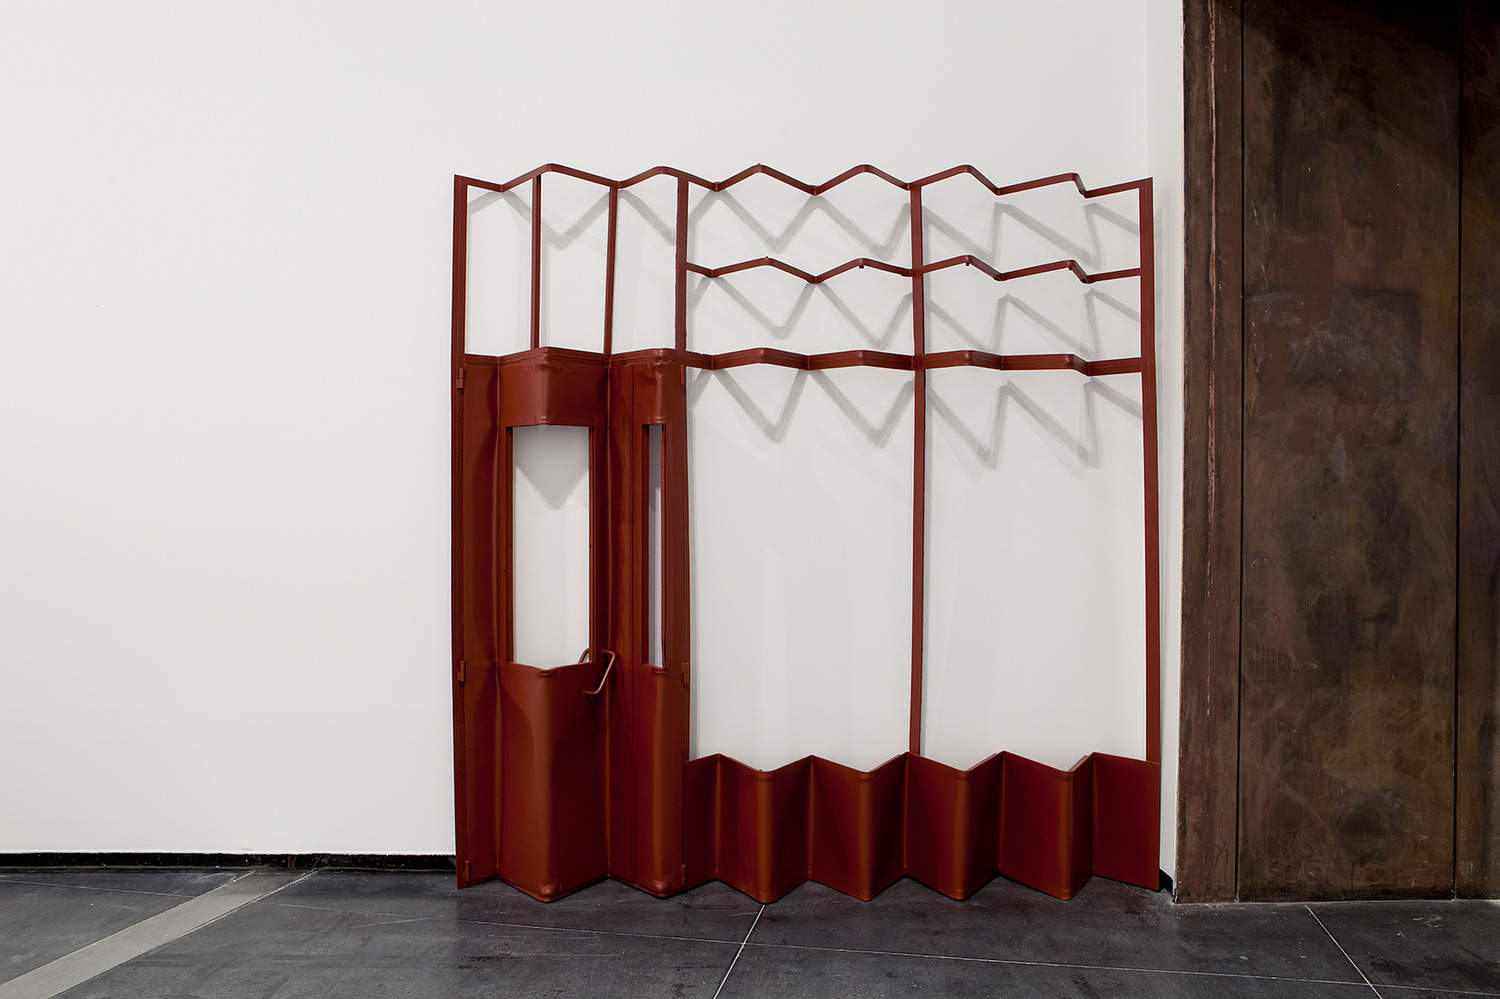 Monika Sosnowska, Screen, 2012, Painted steel, 273 x 273 x 31 cm, Installation view, 'Regional Modernities', ACCA, Melbourne, 2013